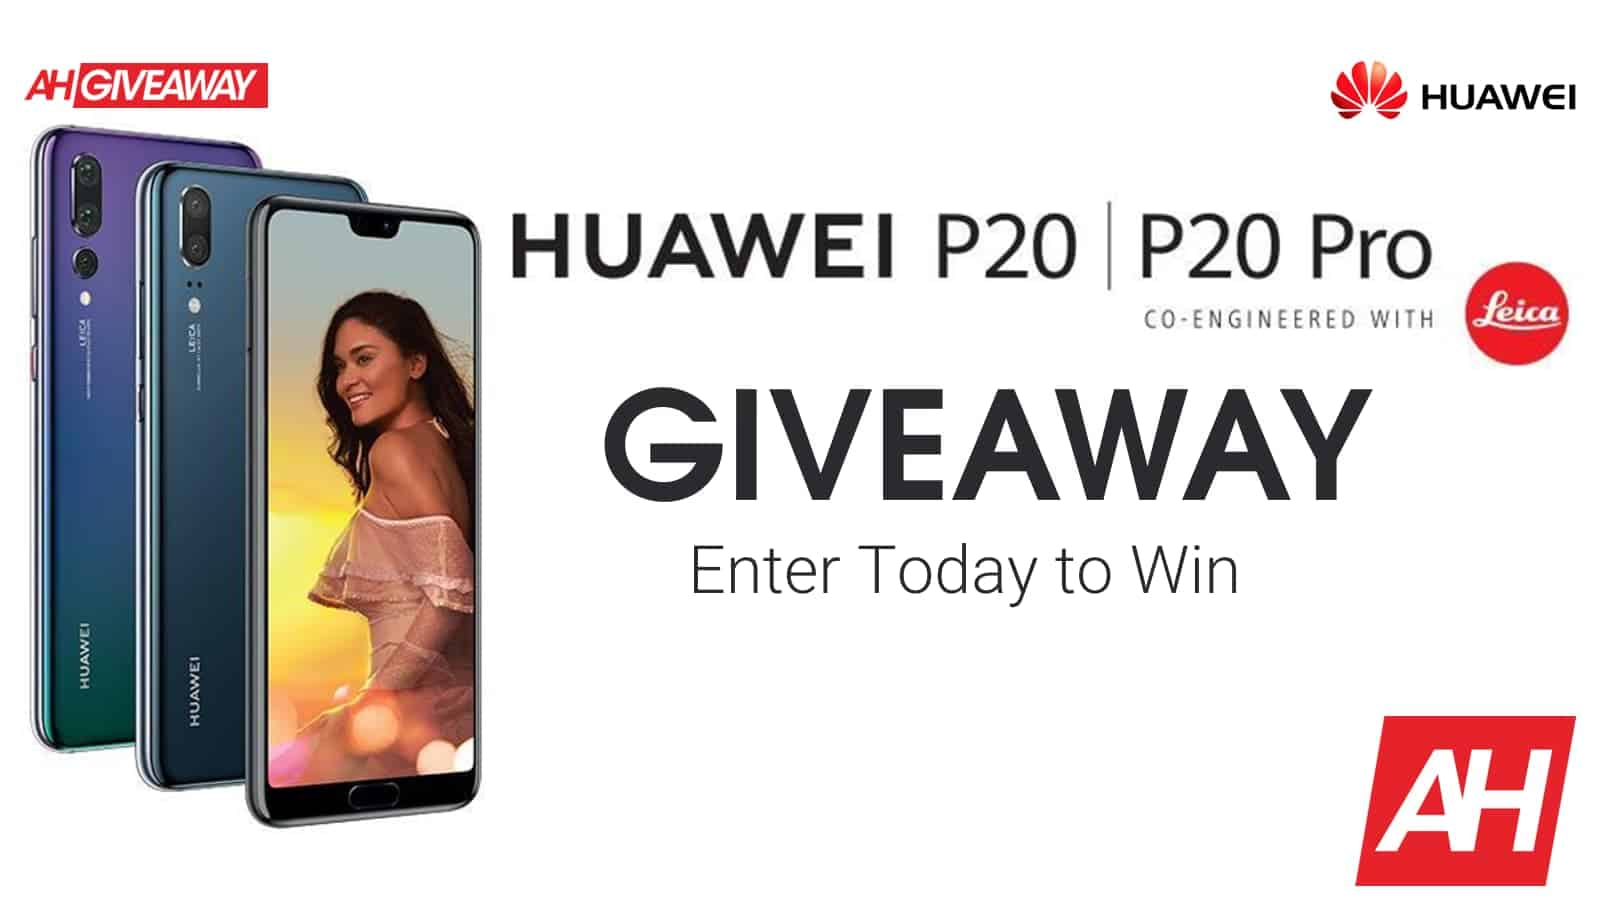 ANDROID HEADLINES Huawei P20 P20 Pro Giveaway